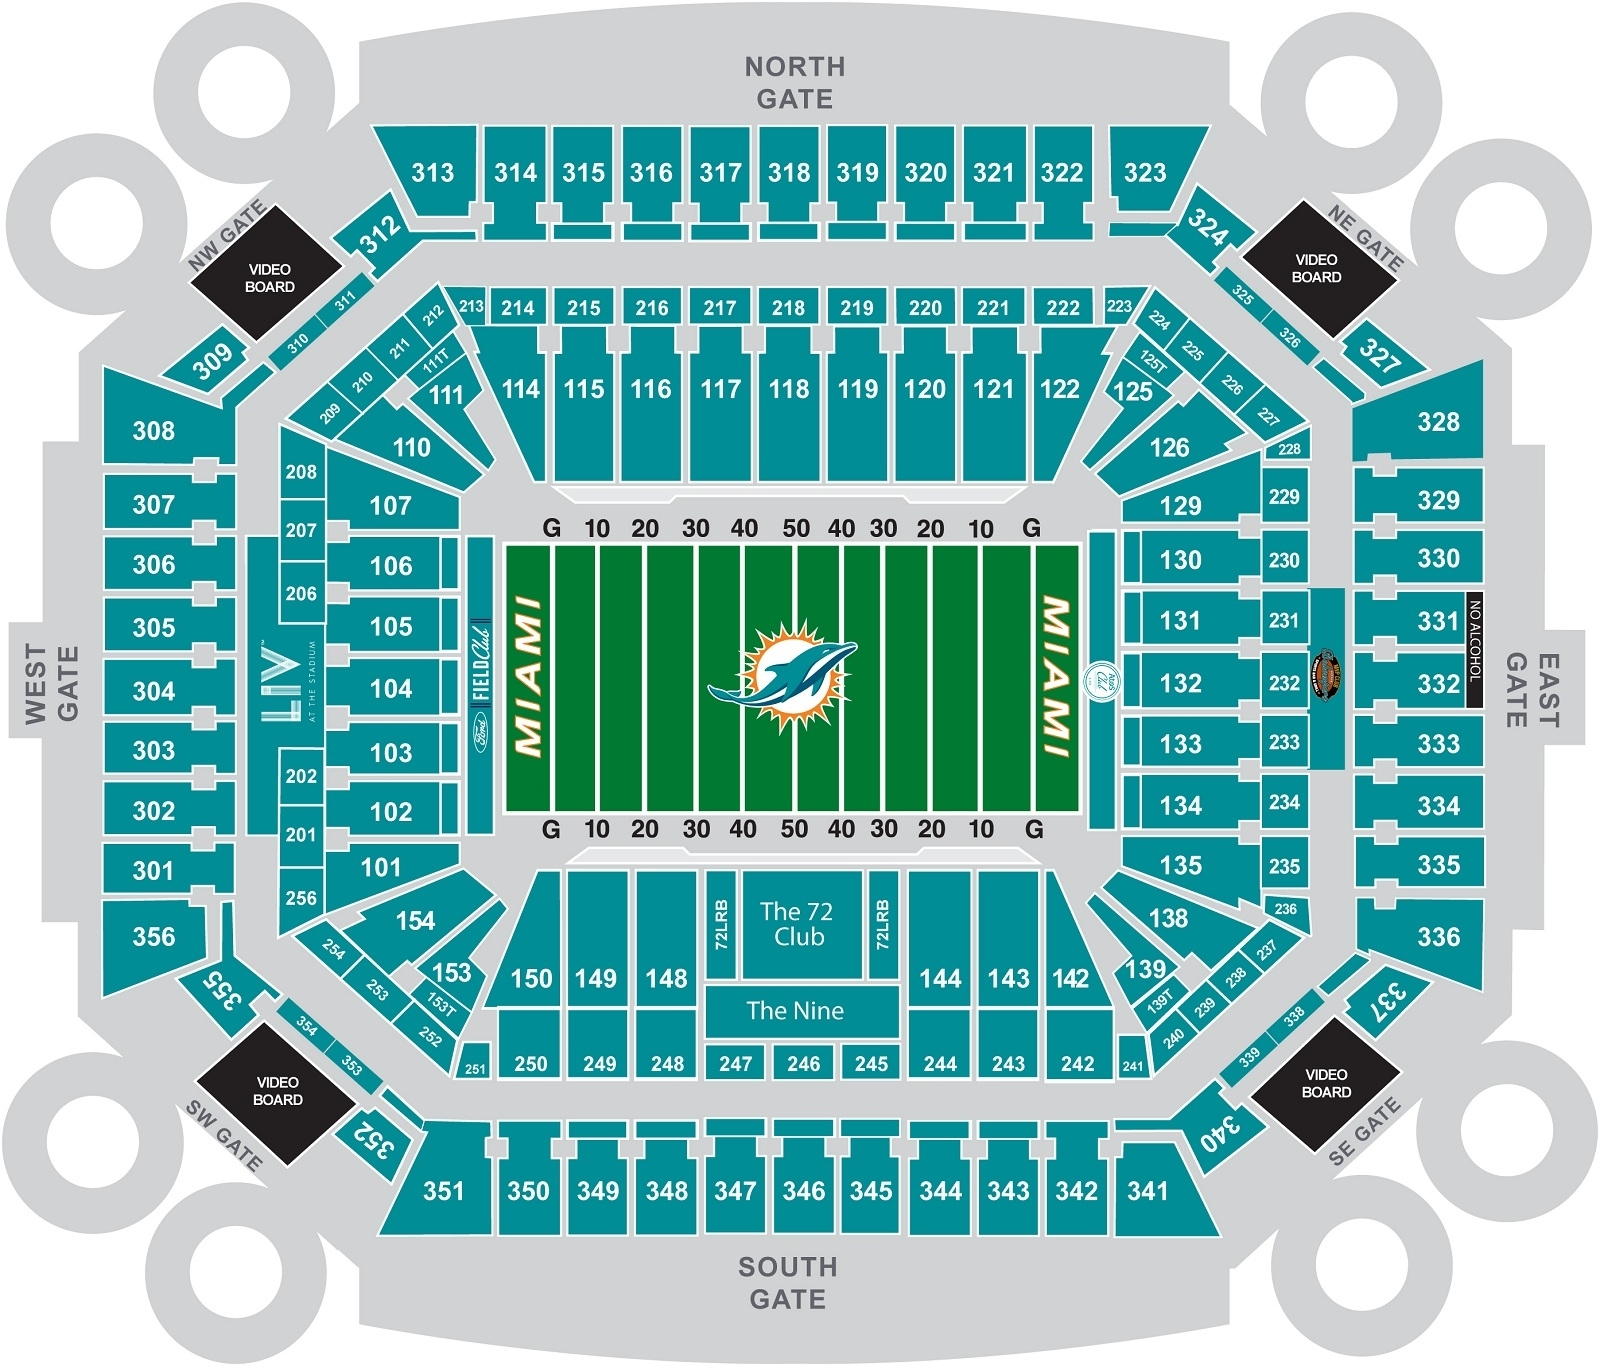 2020 Super Bowl Seating Chart | February 2, 2020 | Fan intended for Atlanta Super Bowl Stadium Seating Chart